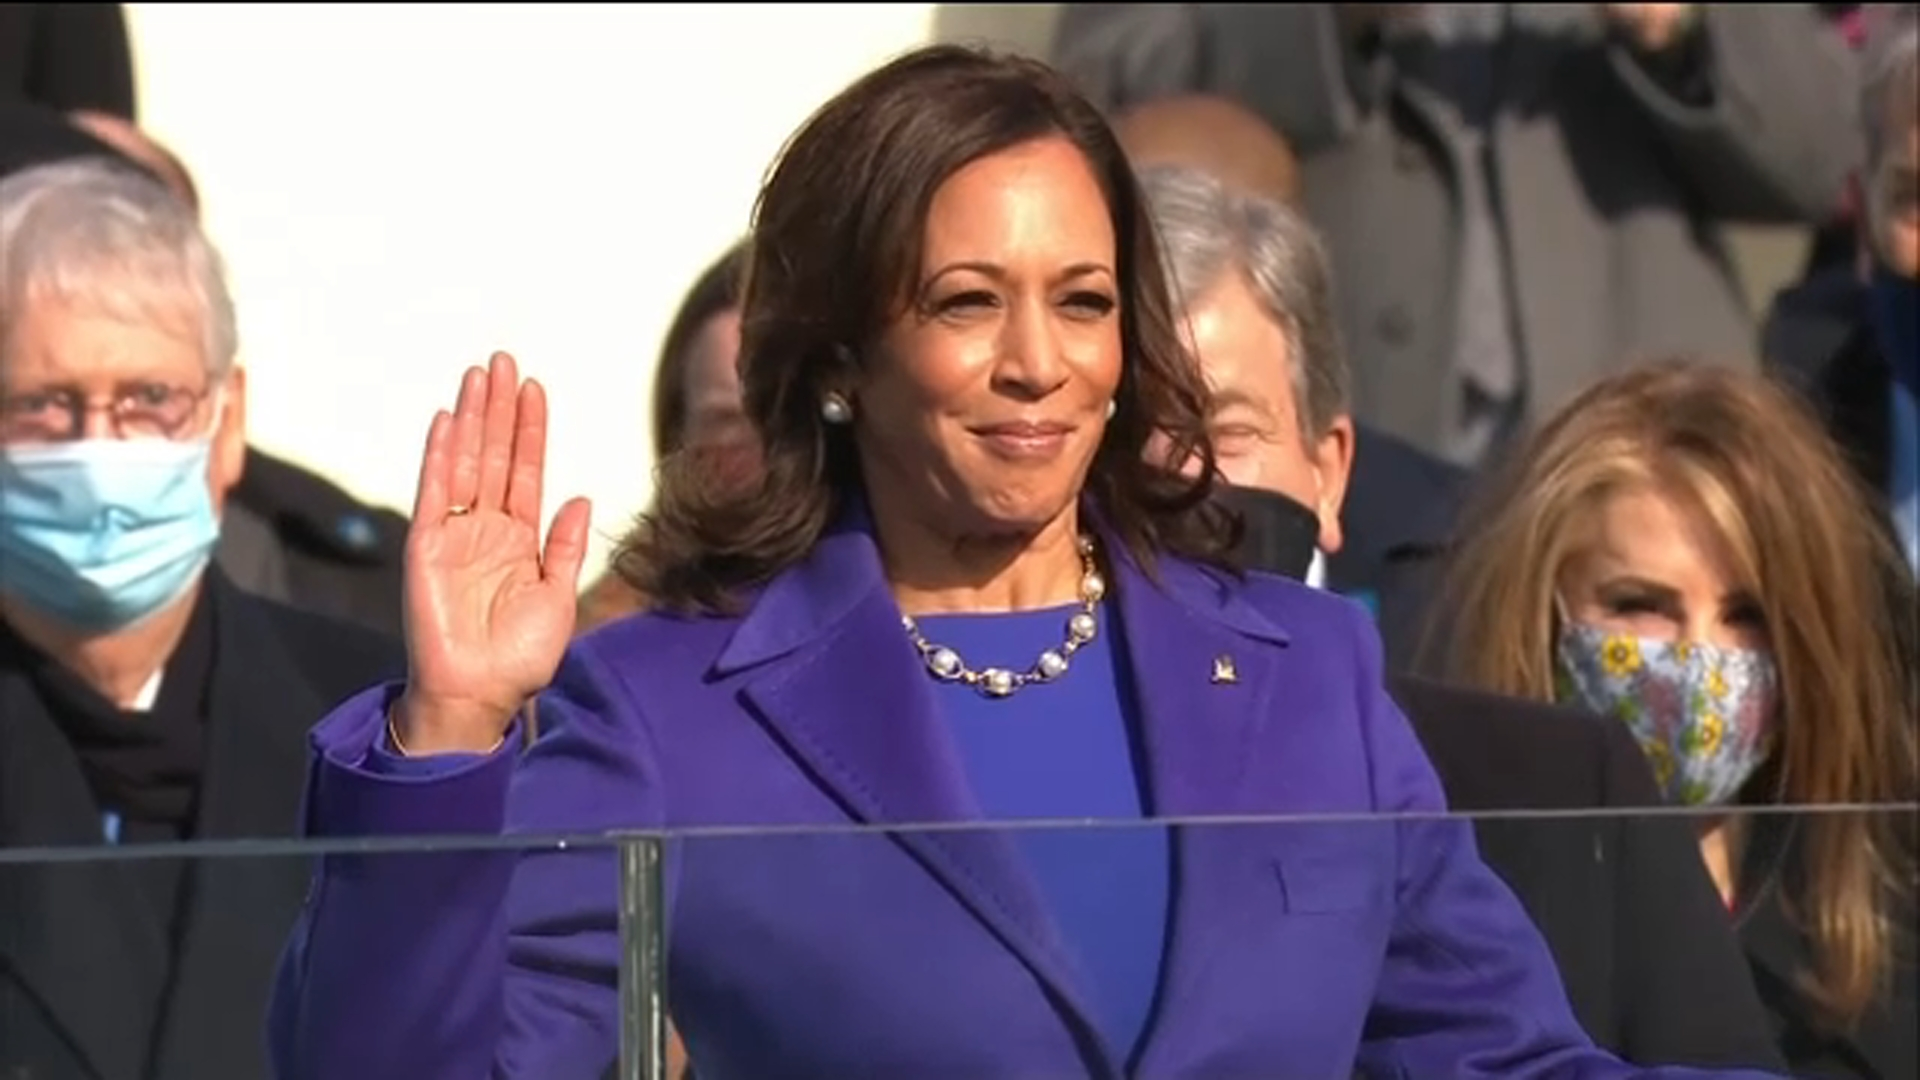 Vice President Kamala Harris sworn in, opening new chapter in US politics on Inauguration Day